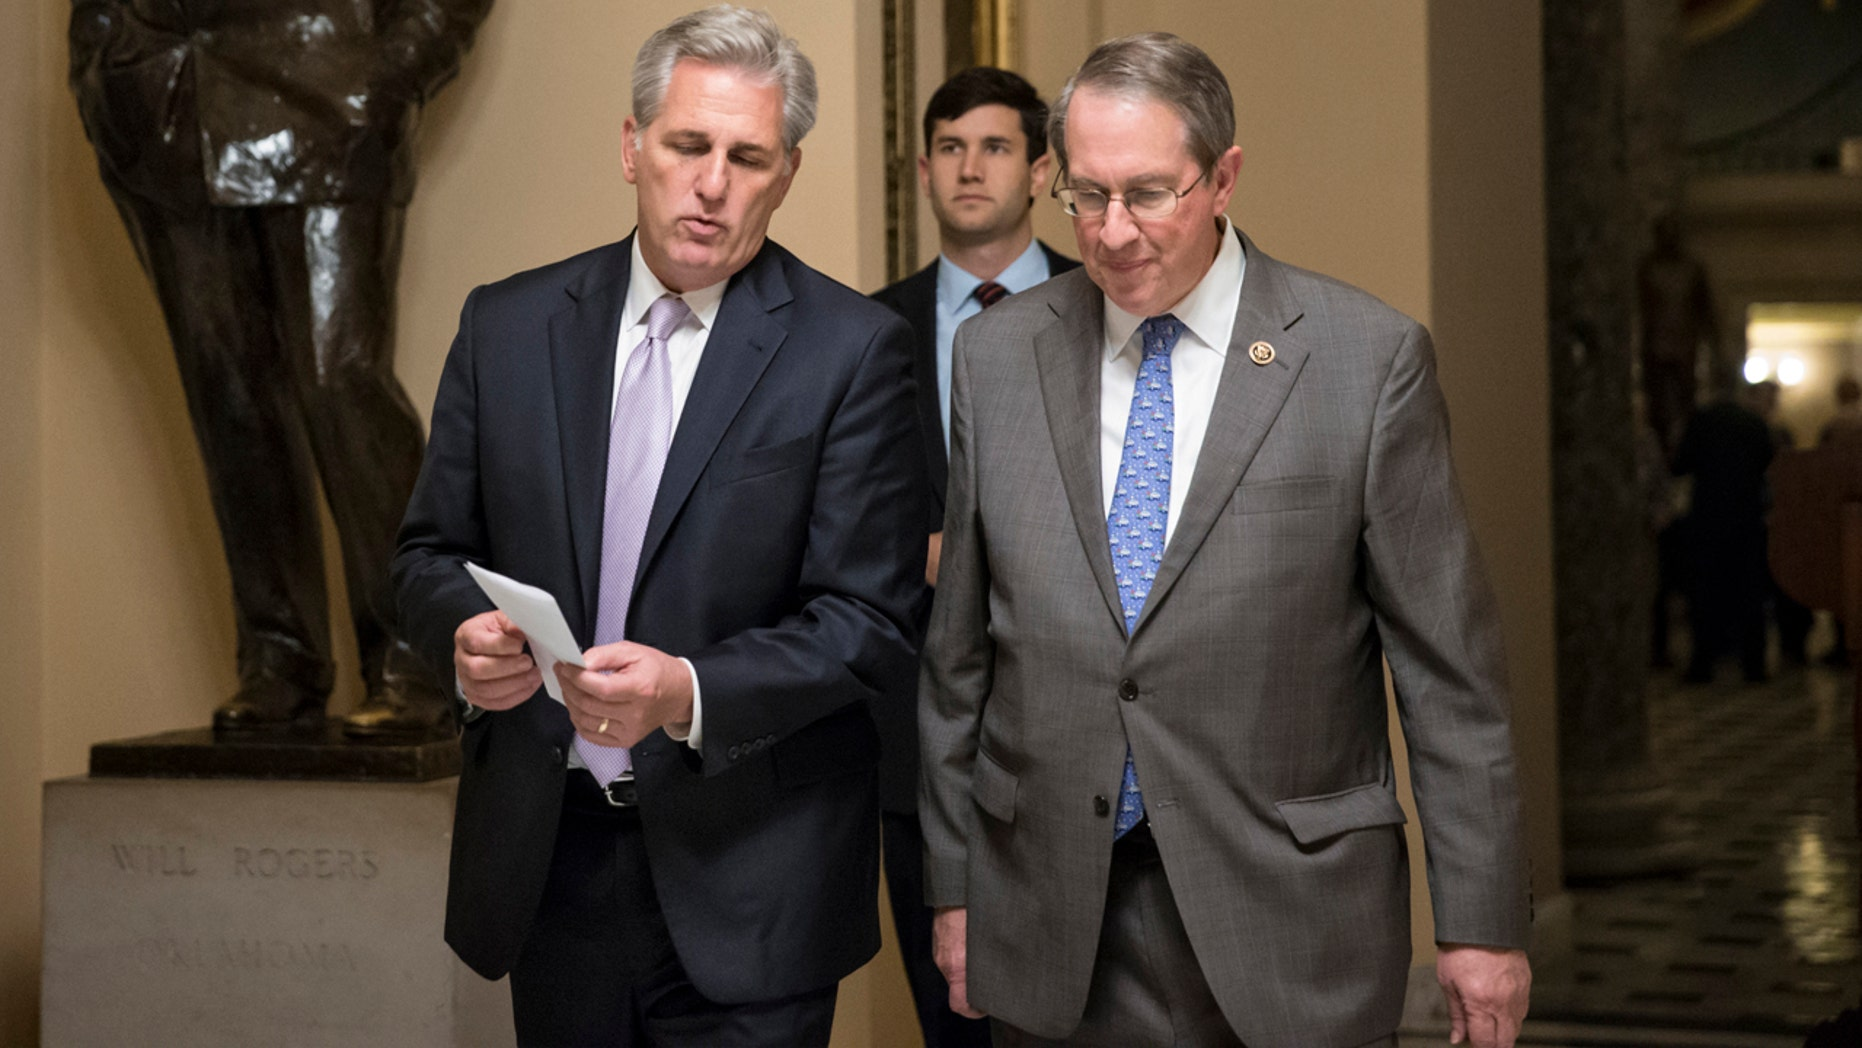 House Majority Leader Kevin McCarthy, R-Calif., left, and House Judiciary Committee Chairman Bob Goodlatte, R-Va., walk to the chamber as the House votes on a rewrite of the No Child Left Behind law that rolls back the federal control in American education and returns authority to the states on how to improves schools and evaluate teachers, on Capitol Hill in Washington, Wednesday, Dec. 2, 2015.  (AP Photo/J. Scott Applewhite)